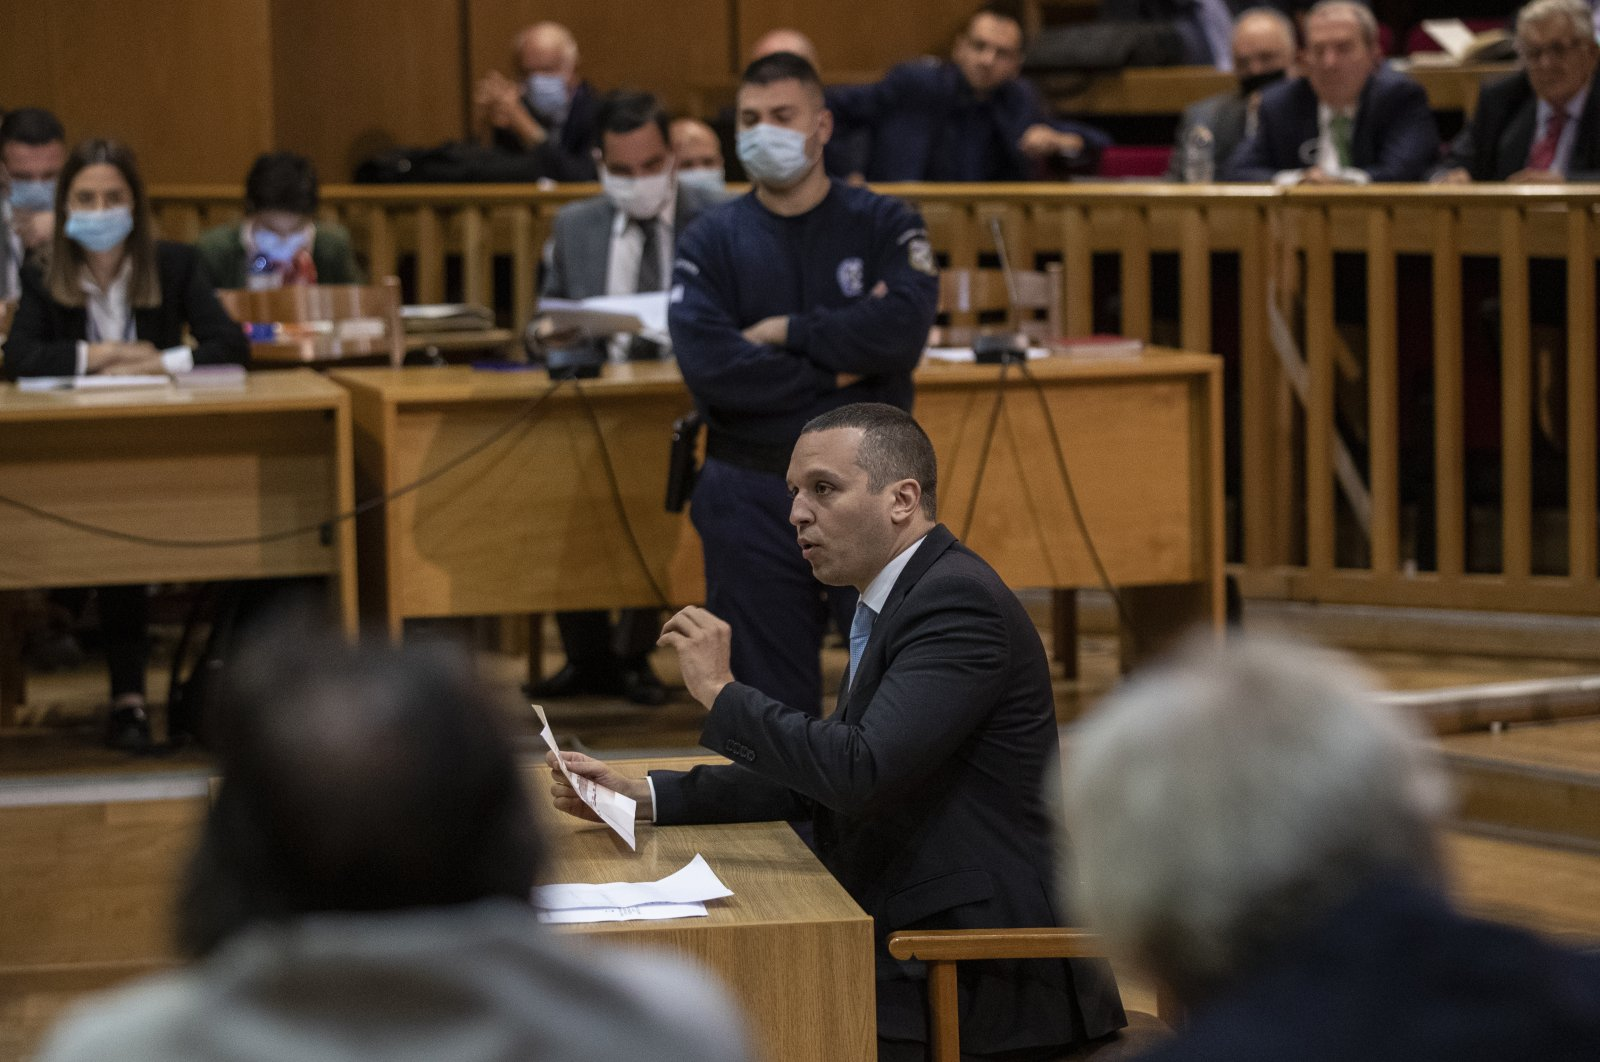 Iias Kasidiaris, former Golden Dawn lawmaker who had been found guilty along with others of leading a criminal organization and face 13 years in prison, speaks during a Golden Dawn trial, in Athens, Oct. 21, 2020. (AP Photo)